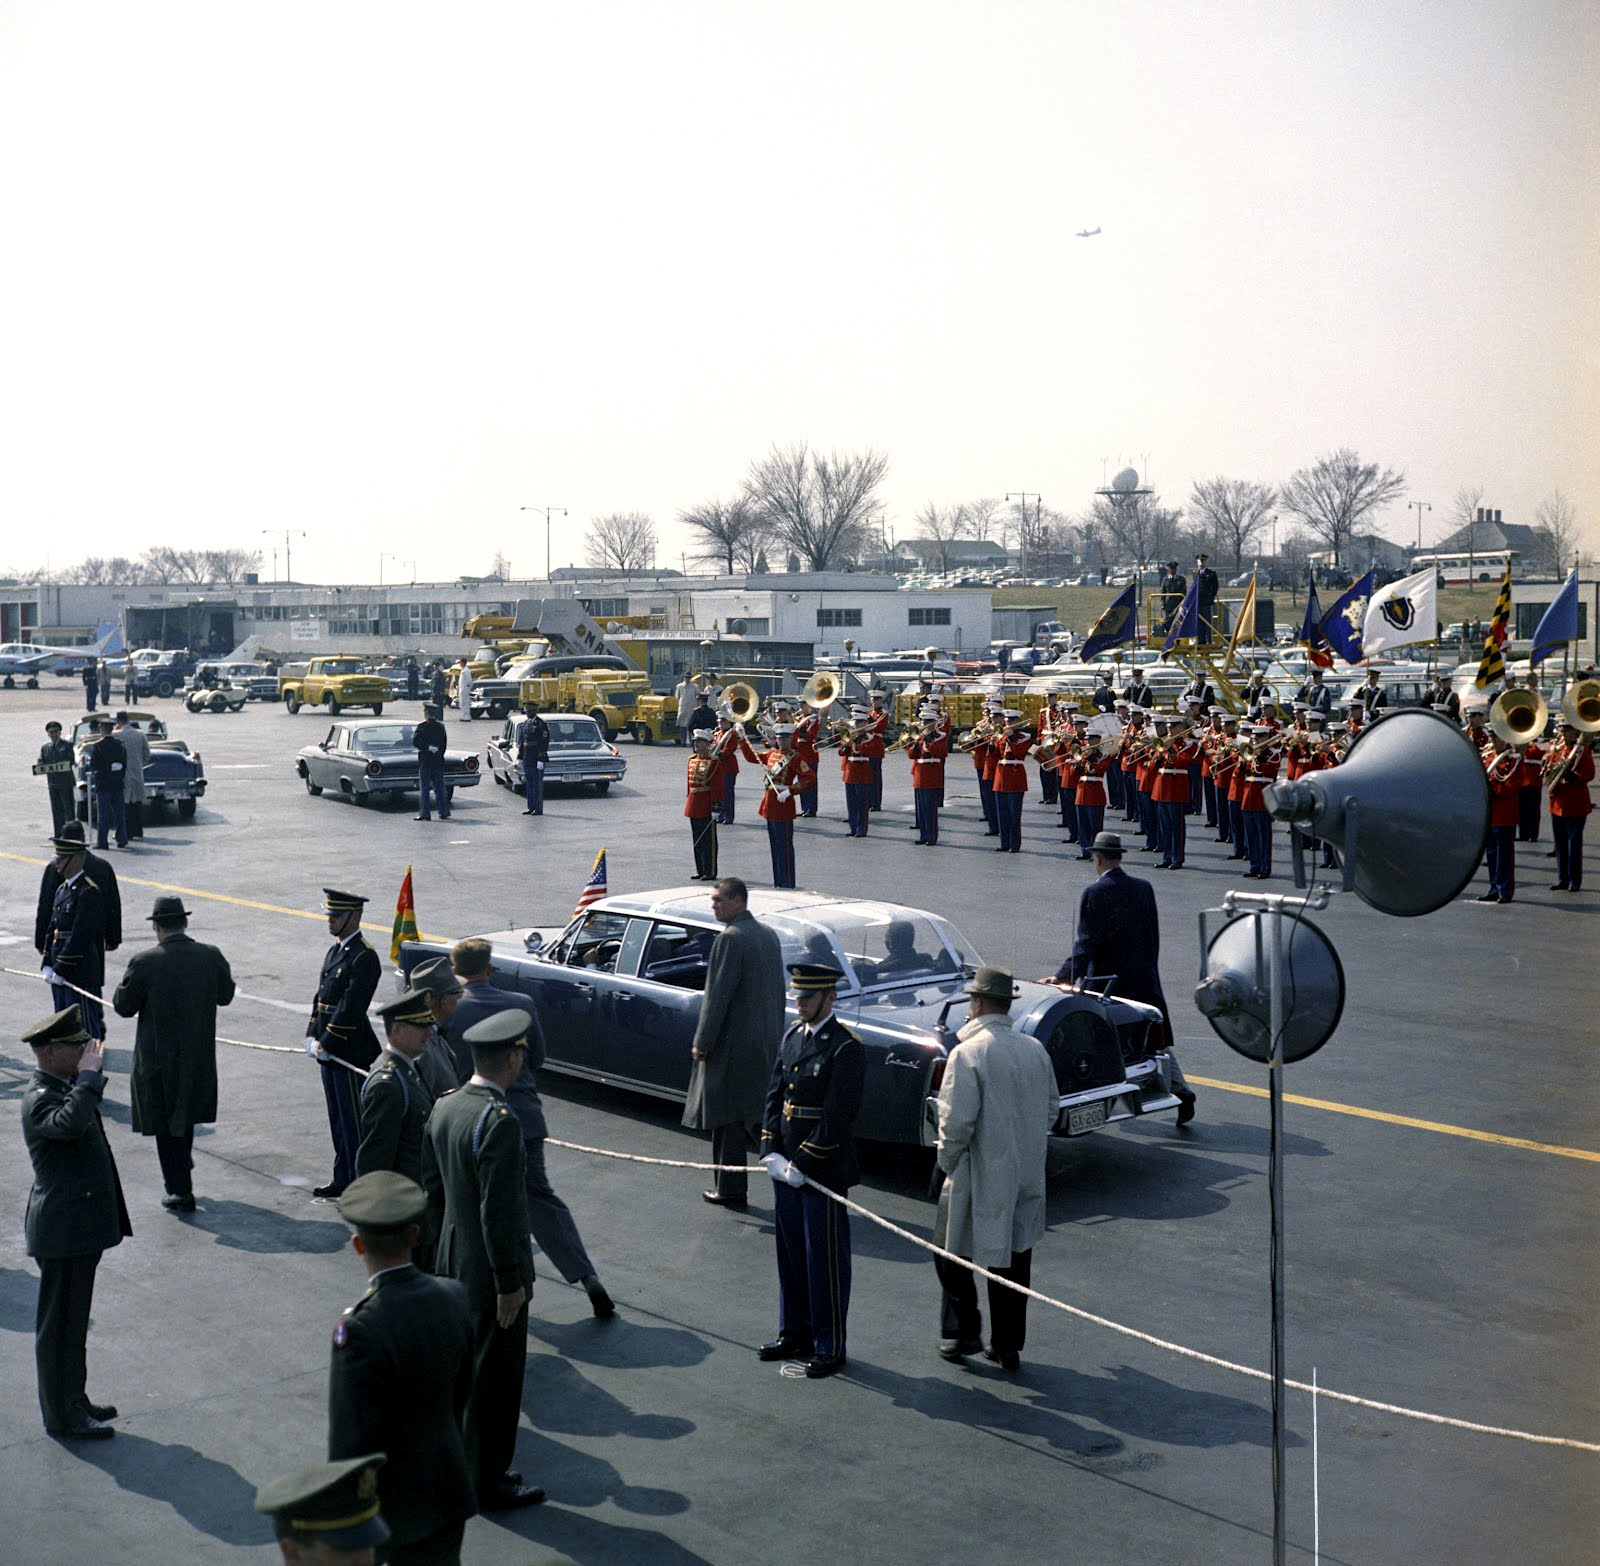 The bubbletop JFK supposedly hated+ agents beside the limo, 3/20/62